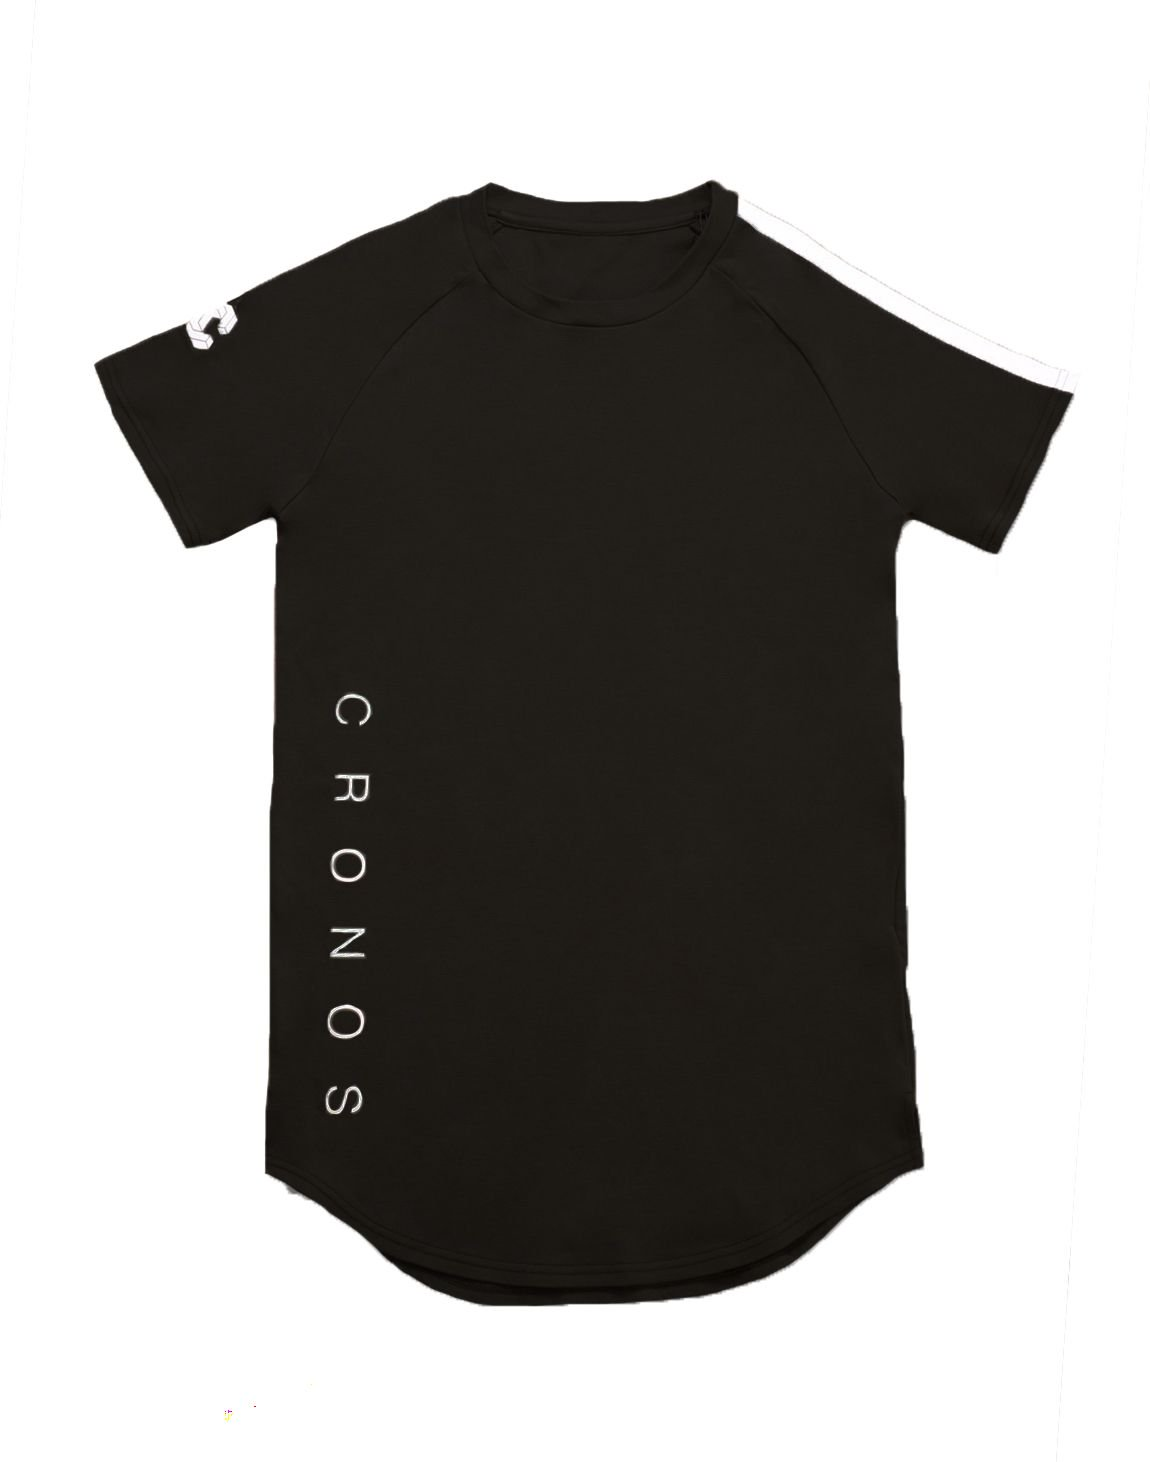 <img class='new_mark_img1' src='https://img.shop-pro.jp/img/new/icons1.gif' style='border:none;display:inline;margin:0px;padding:0px;width:auto;' />CRONOS SHOULDER TWO LINE T-SHIRTS【BLACK】